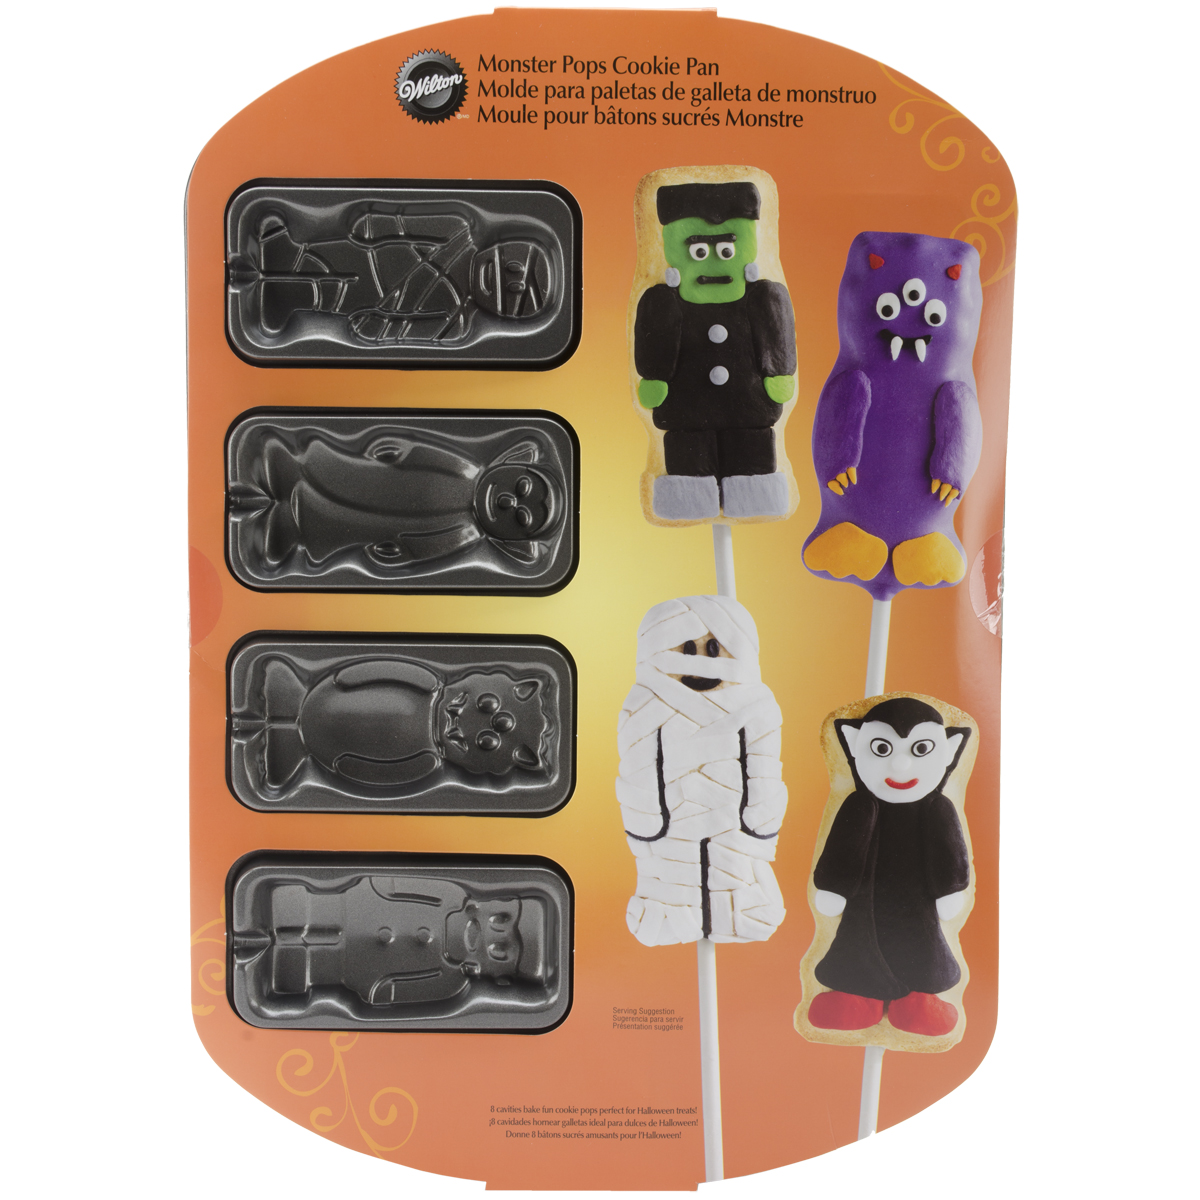 Wilton 8-Cavity Cookie Pop Pan, Monsters 2105-0257